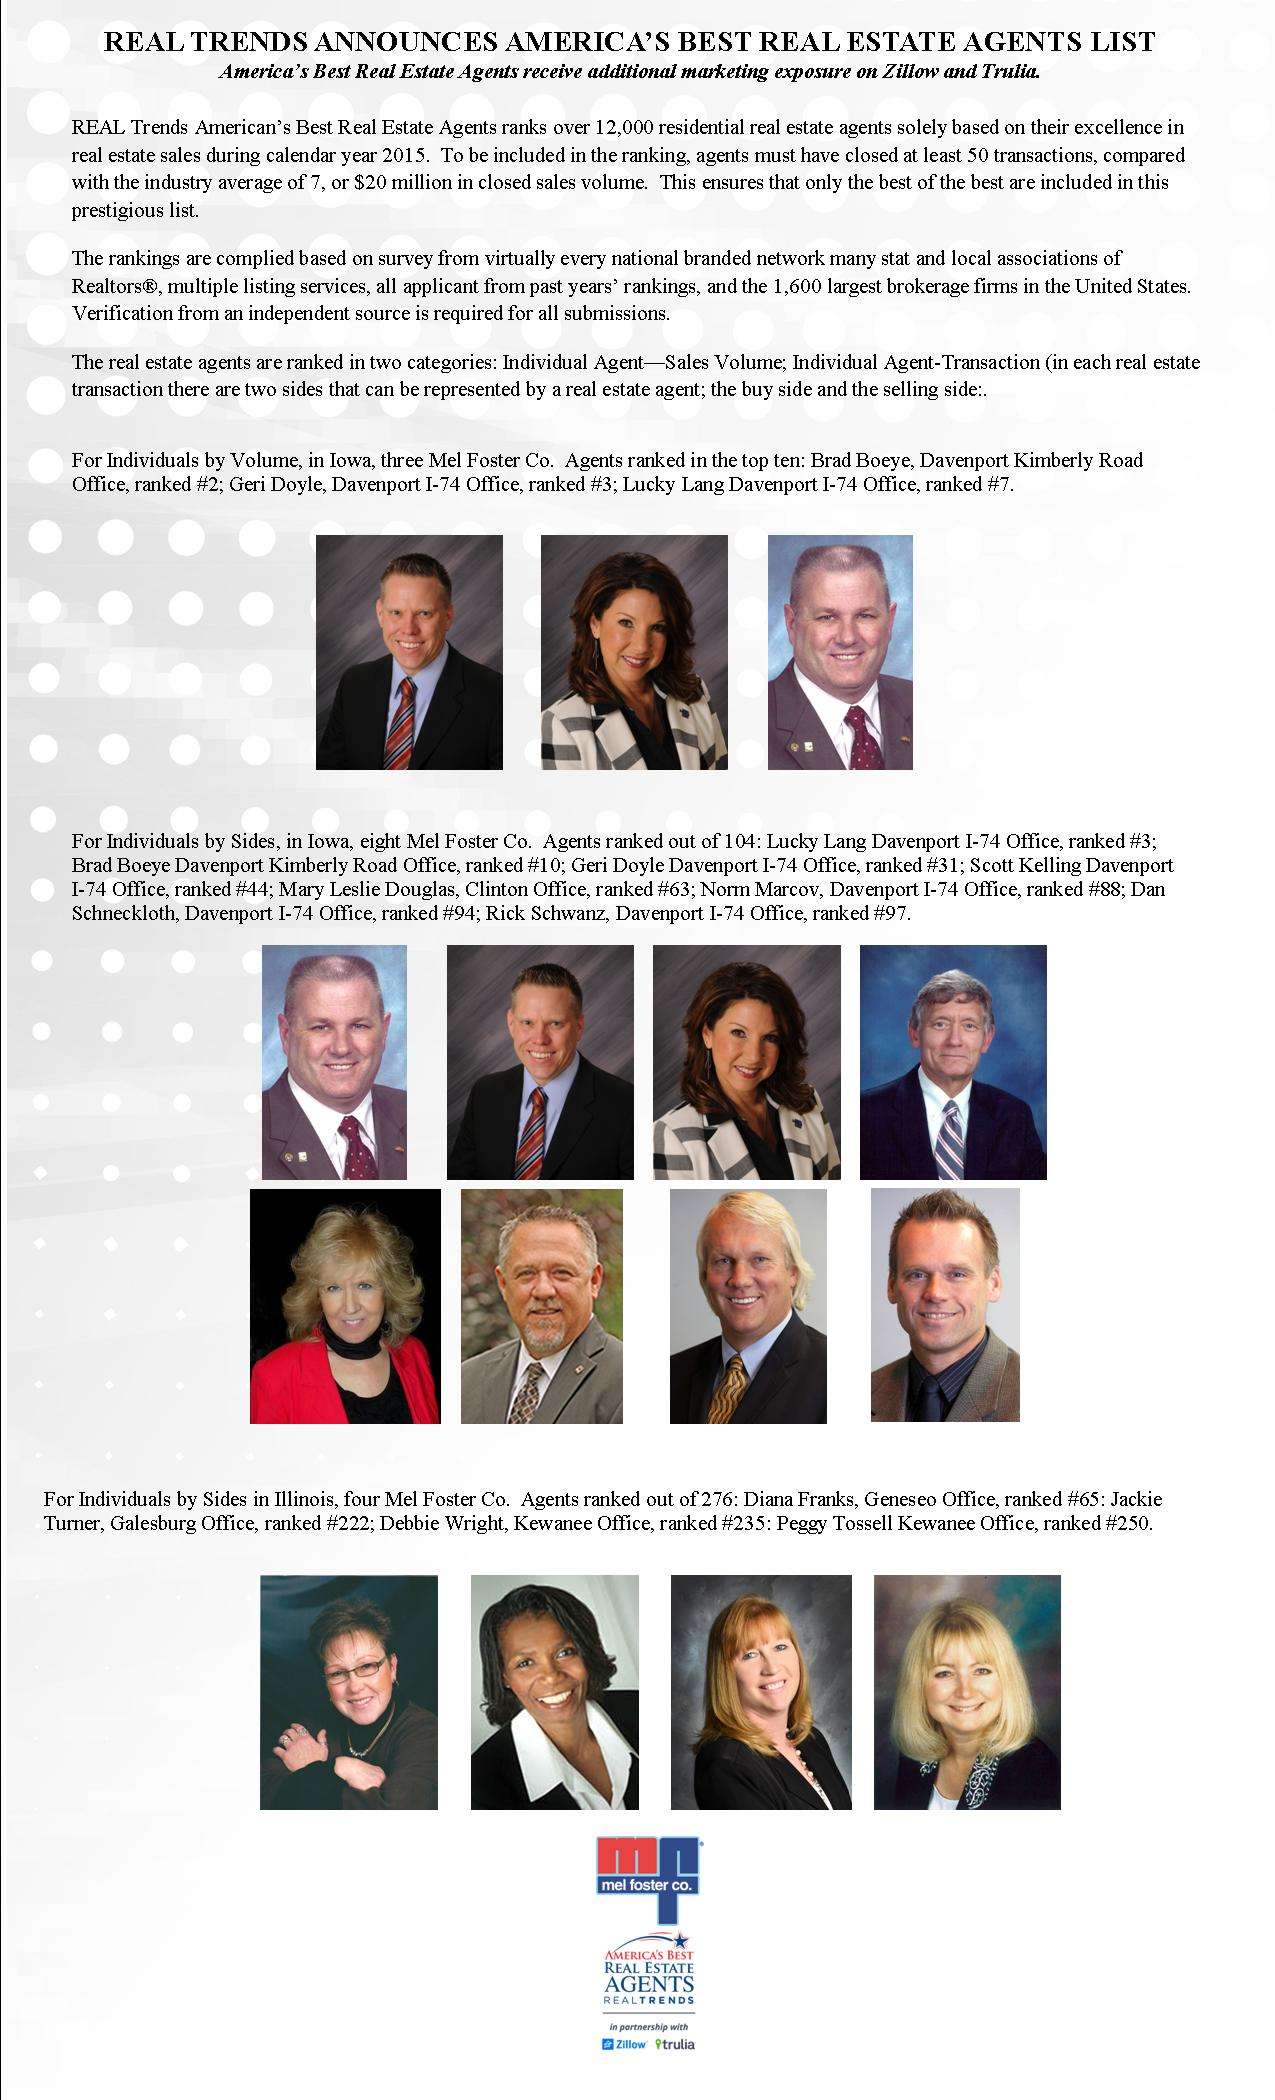 Image of Real Trends top agents from Mel Foster Co for 2015